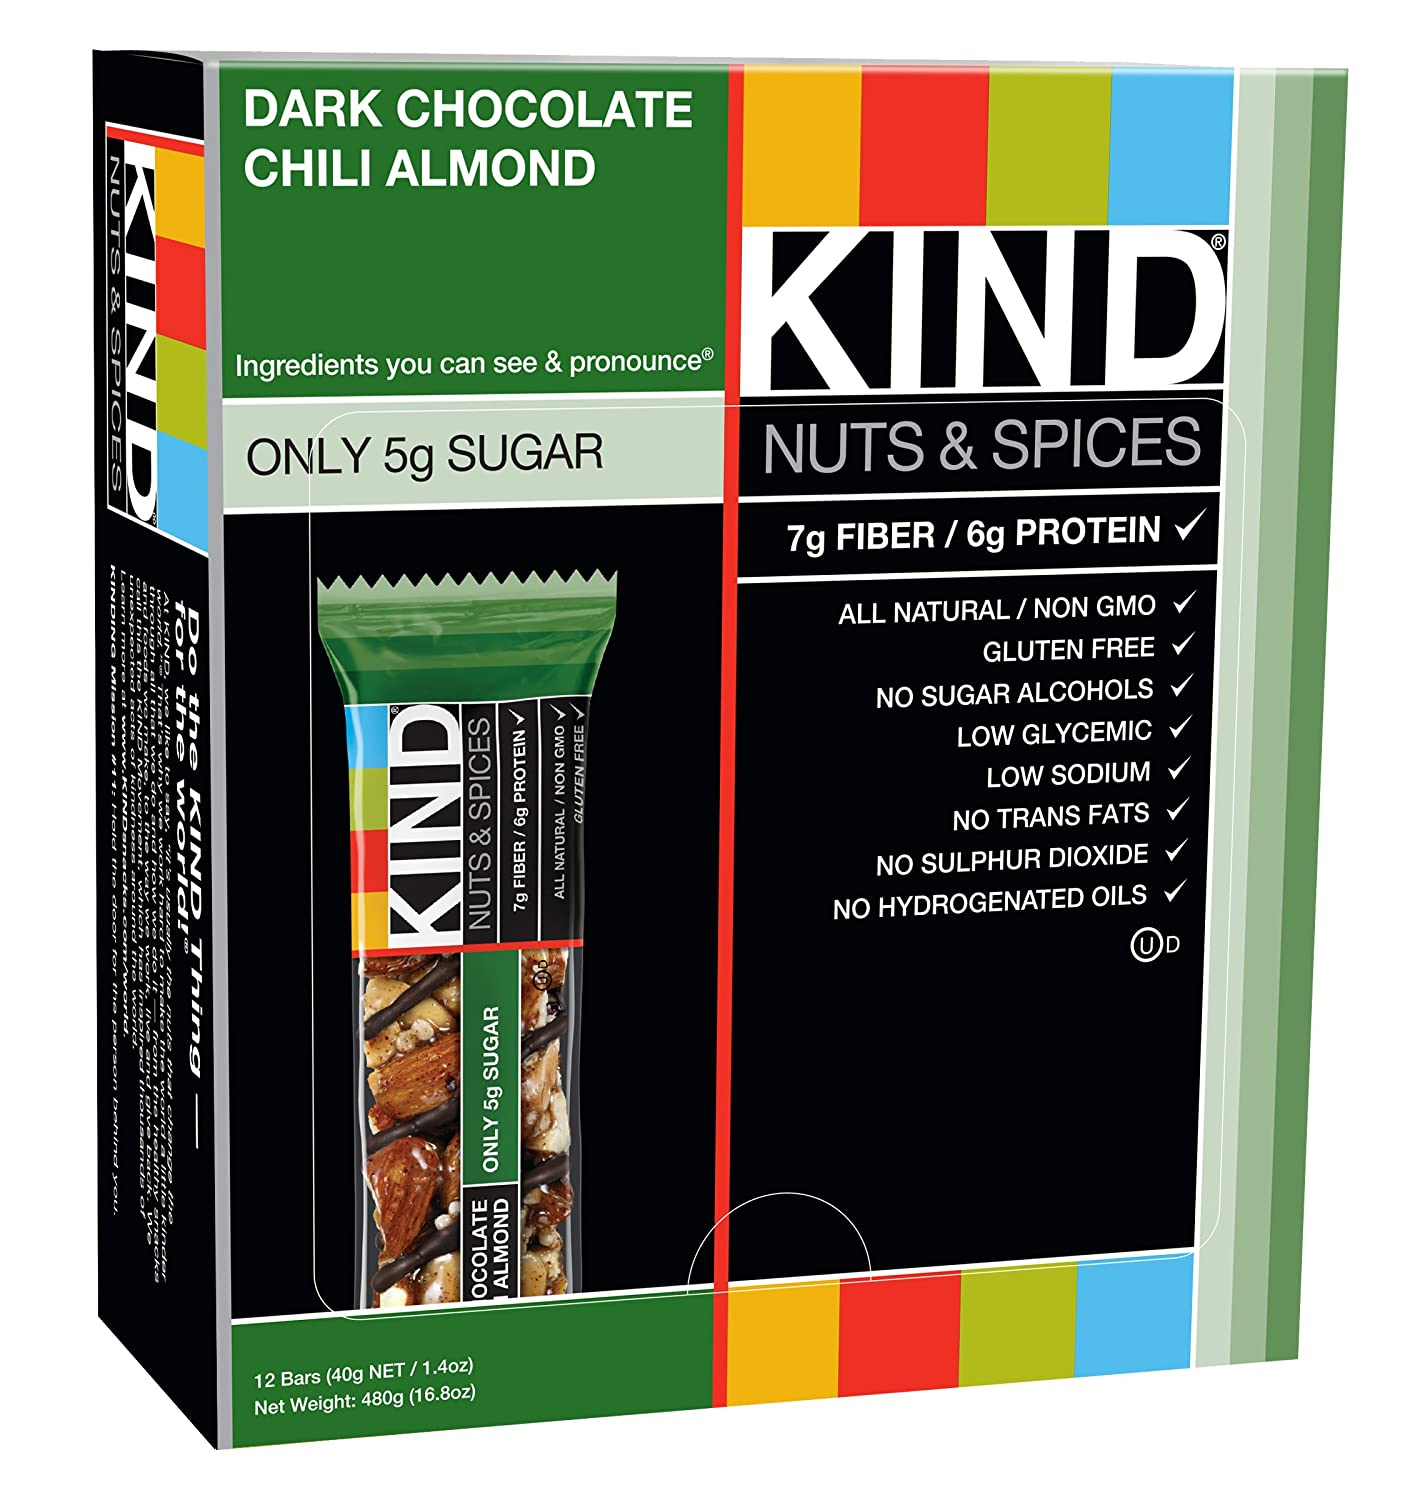 Amazon.com: KIND Bars, Dark Chocolate Chili Almond, Gluten Free ...